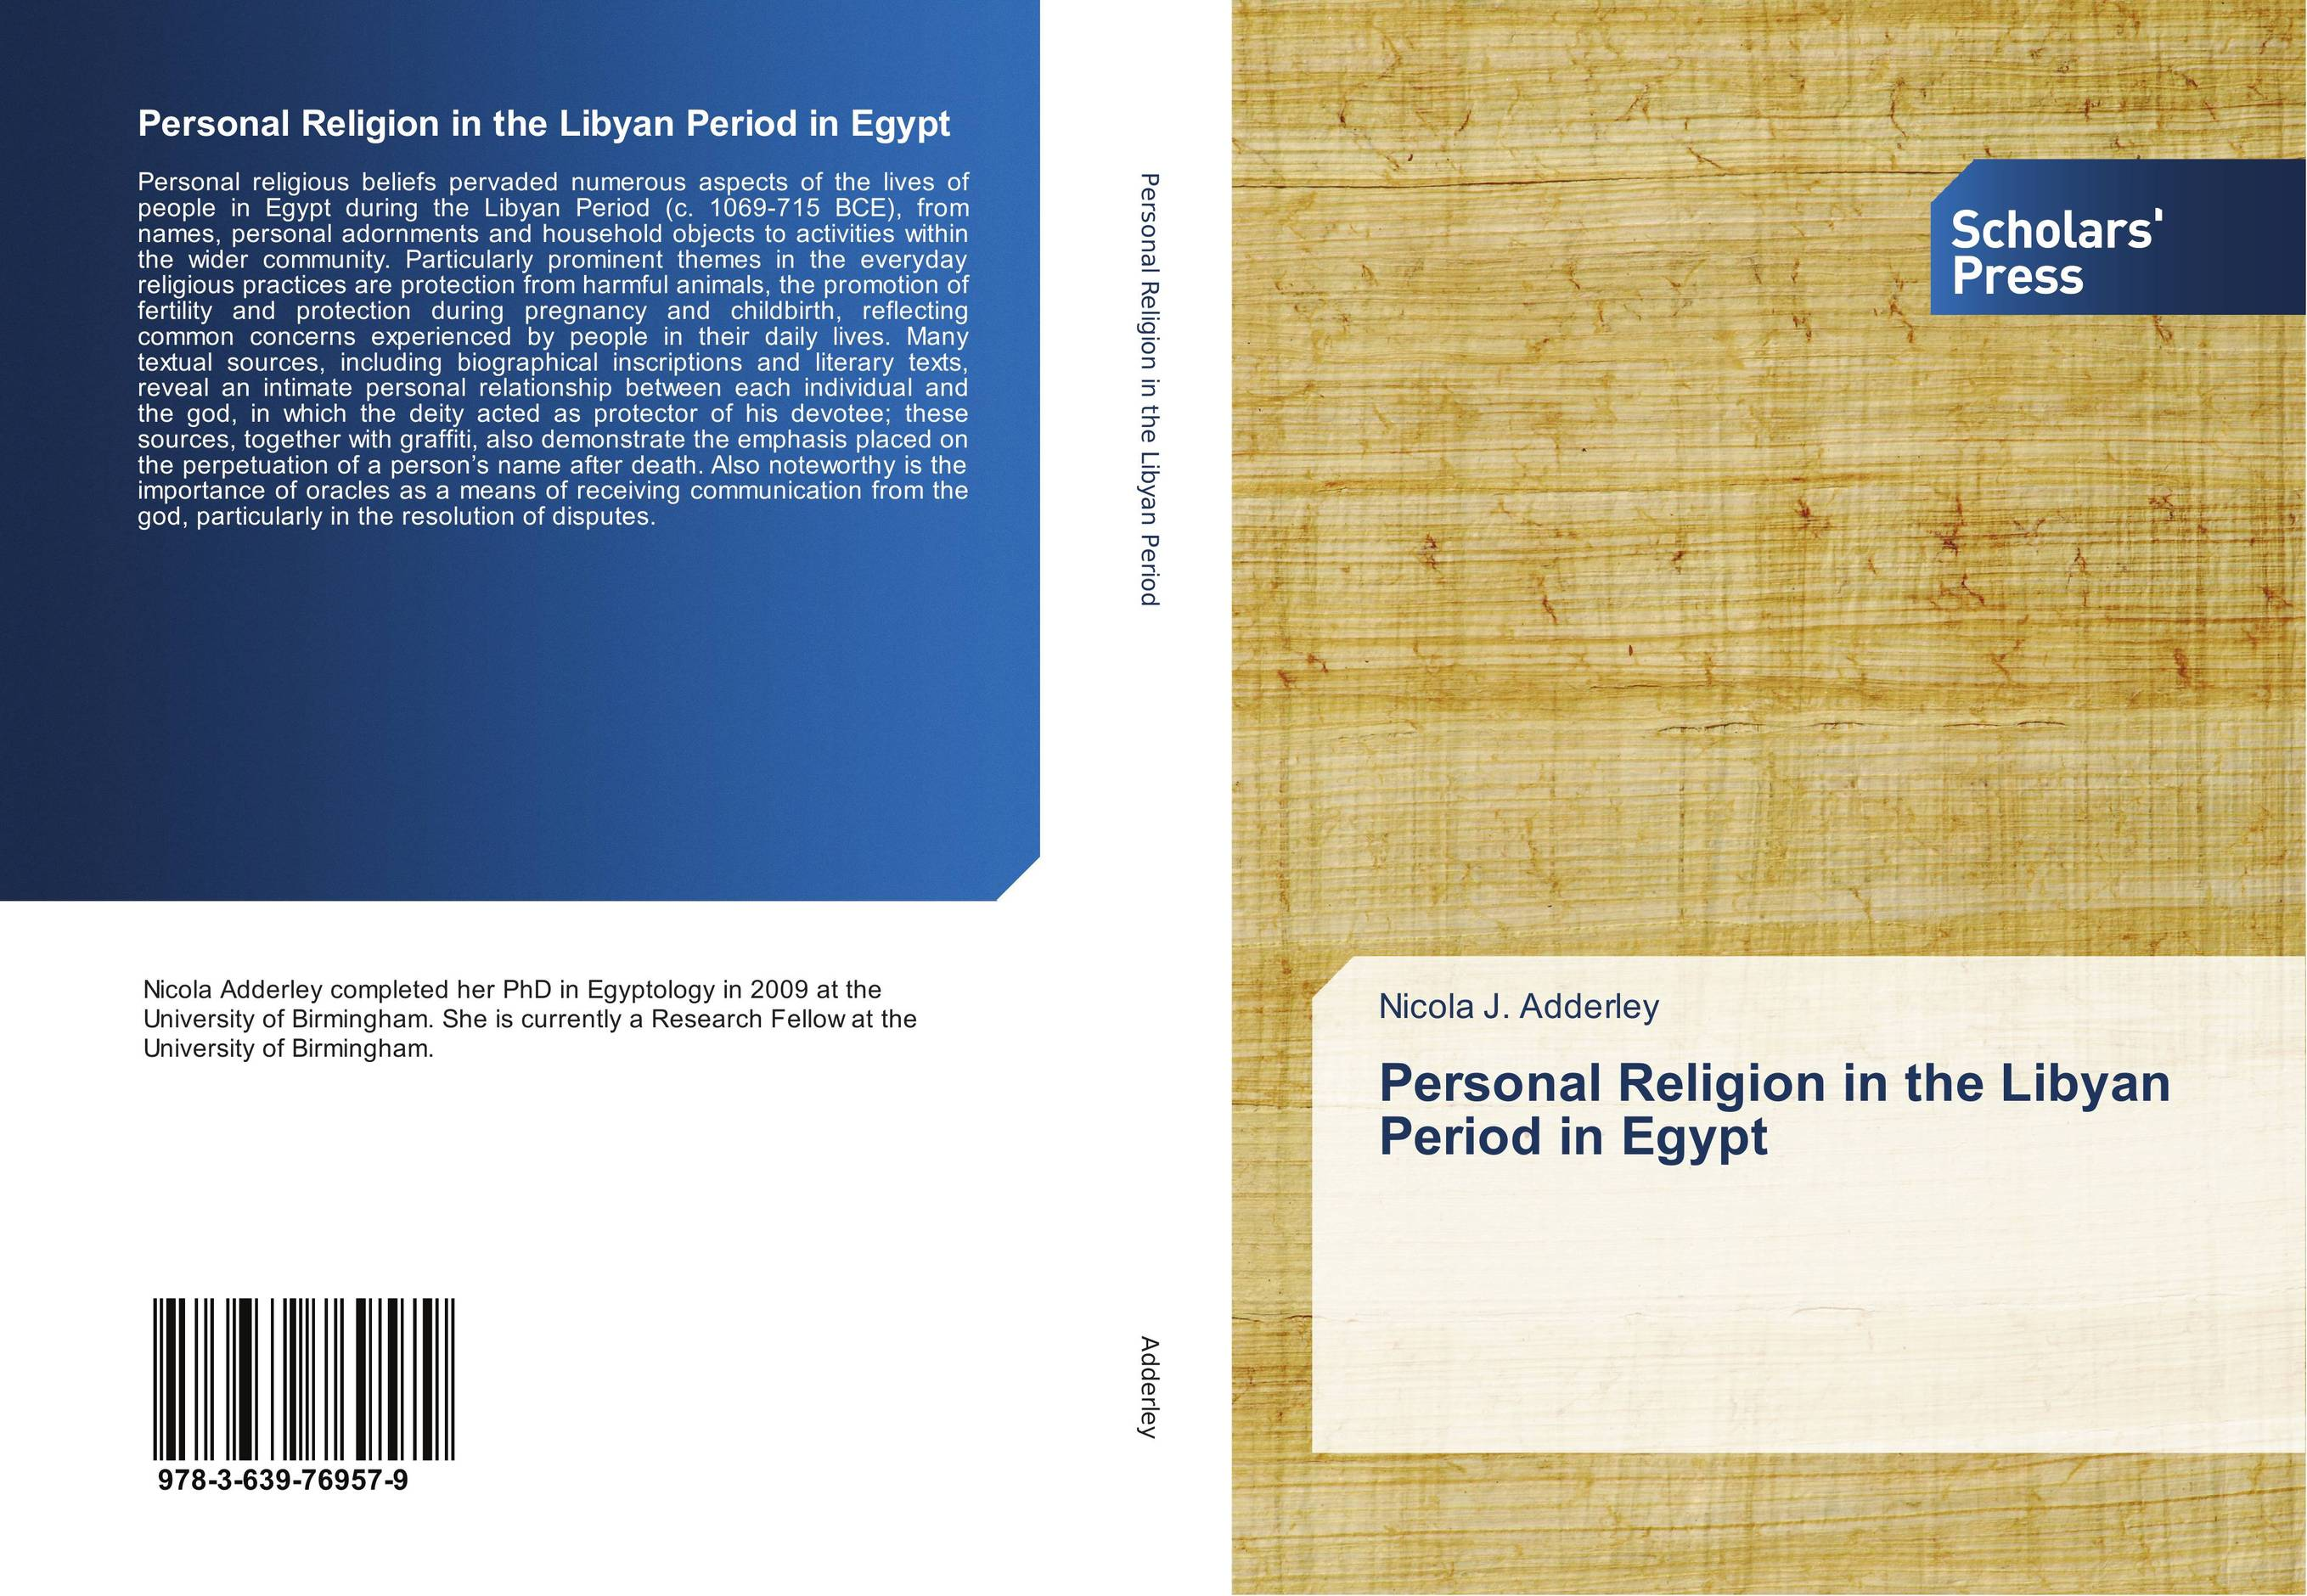 Personal Religion in the Libyan Period in Egypt